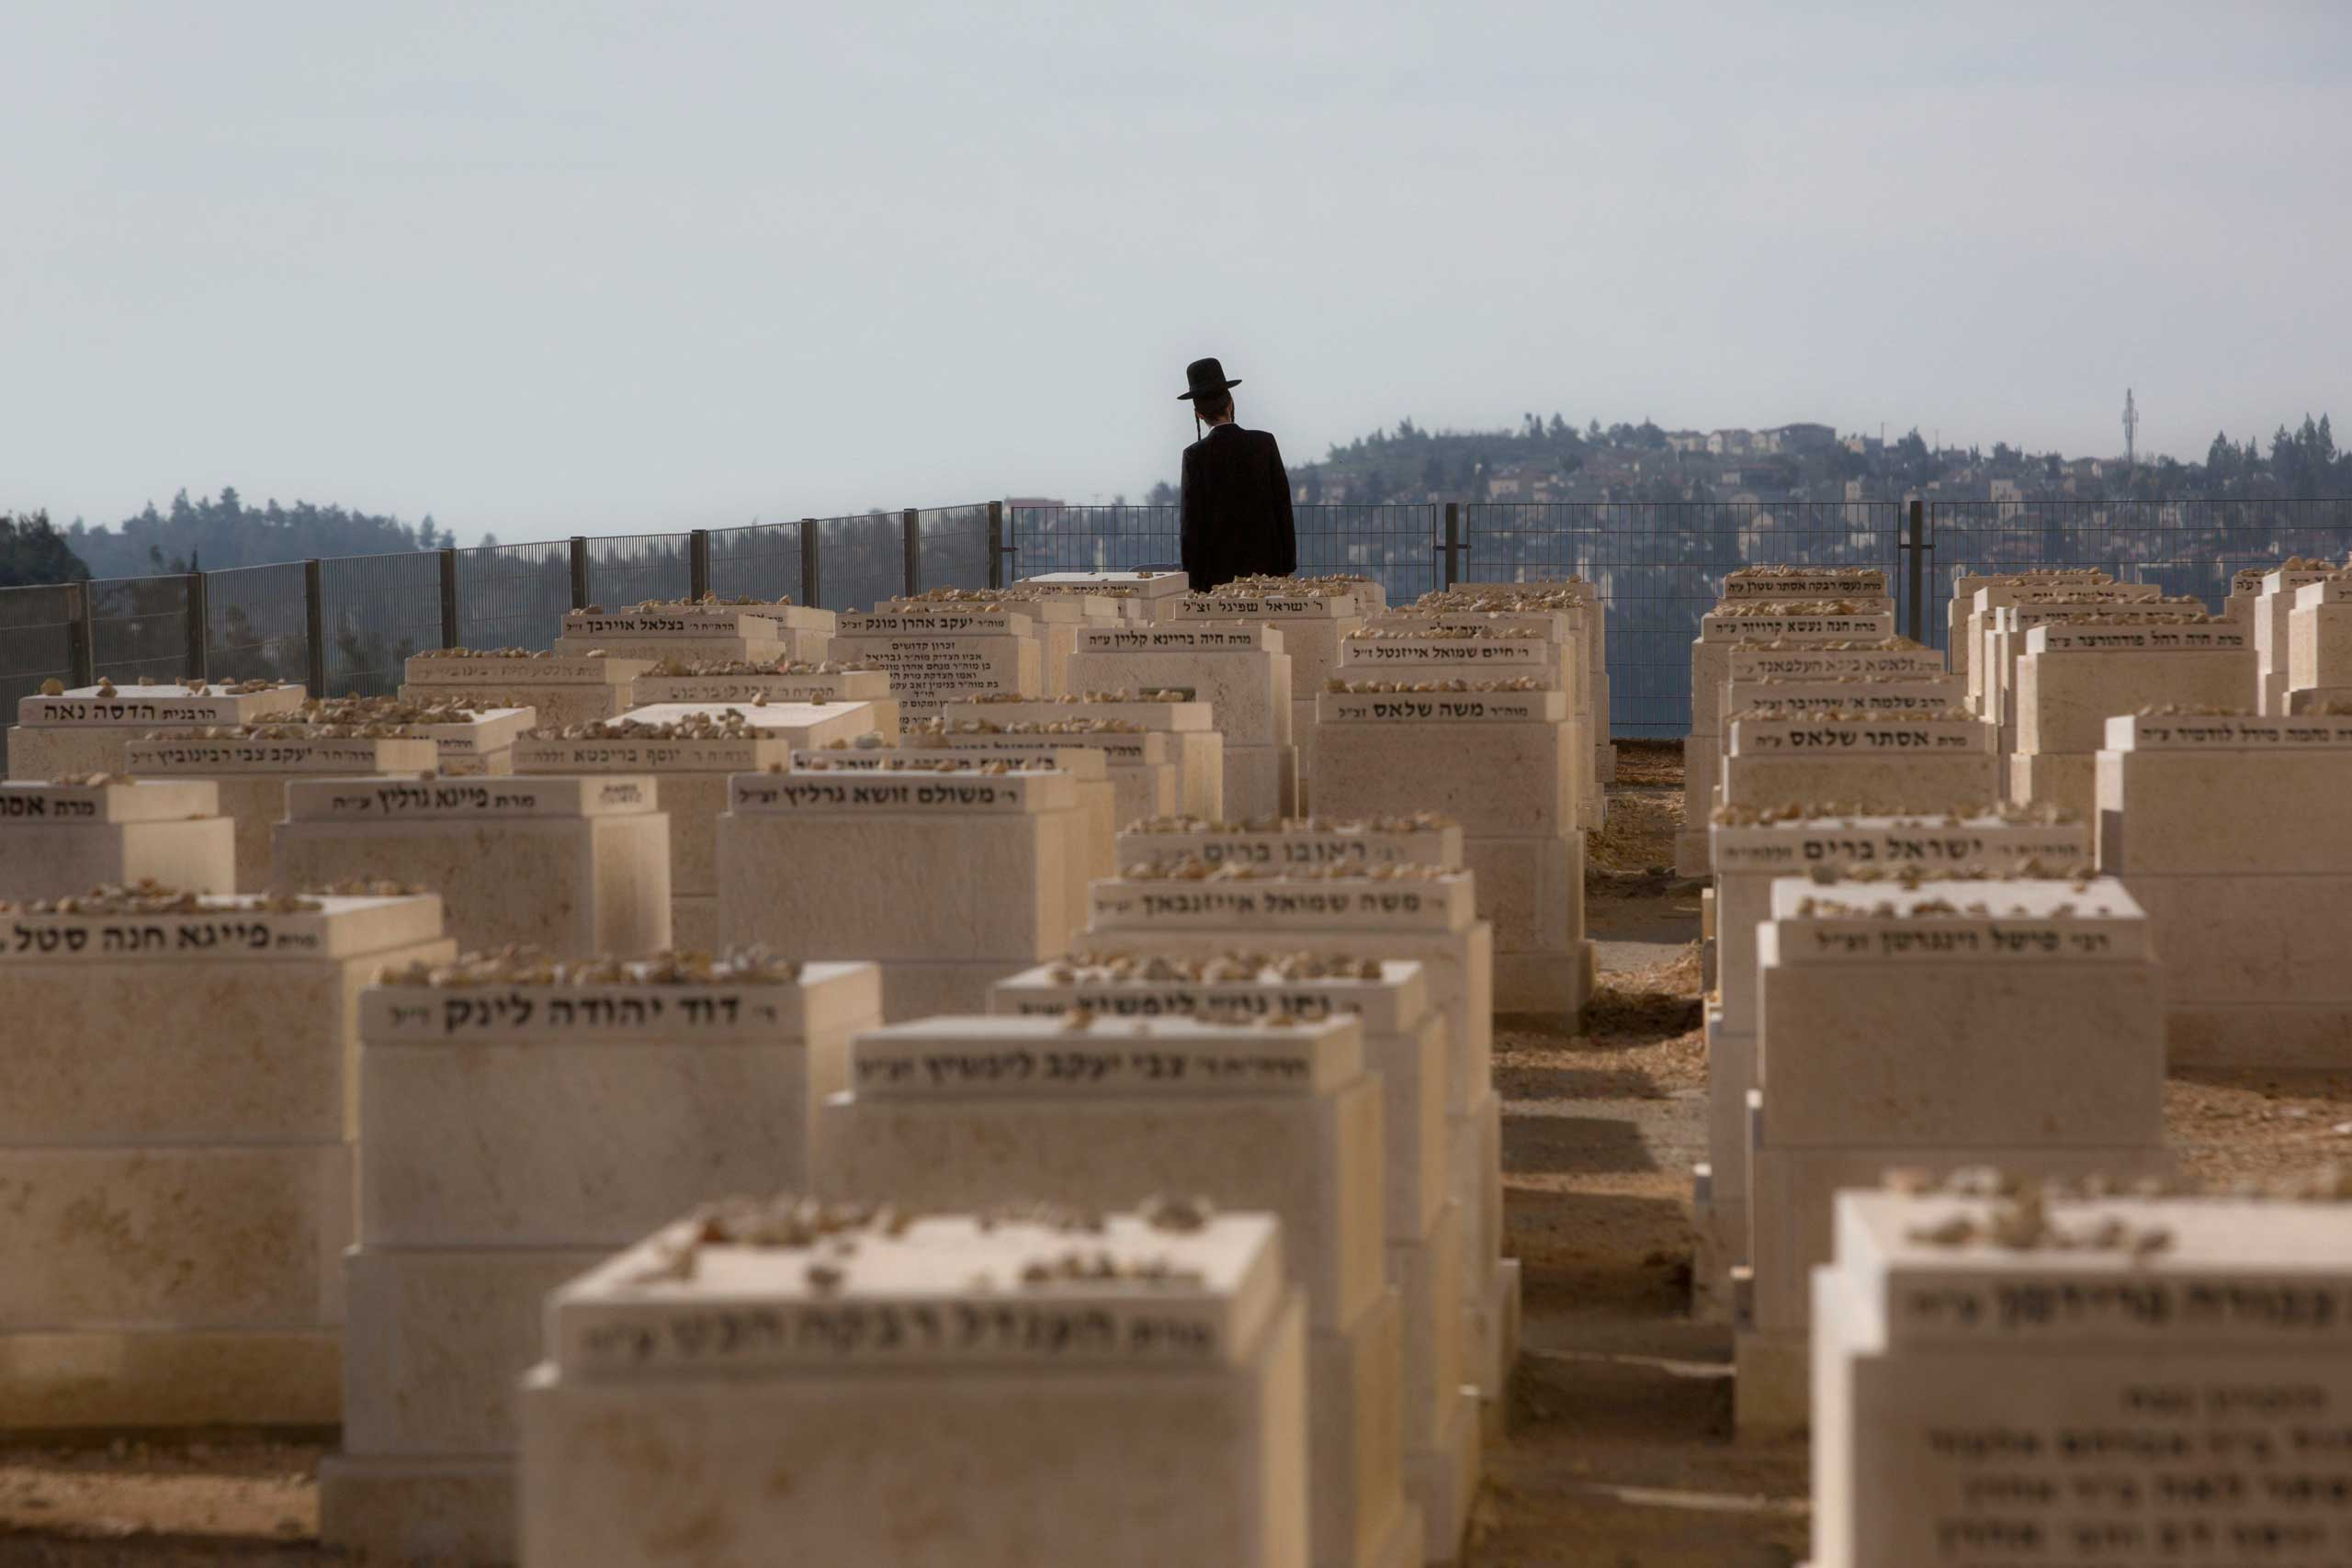 An ultra-Orthodox Jewish man walks in a cemetery during the funeral of four French Jewish victims of the attack last week on a kosher grocery store in Paris, in Jerusalem, Jan. 13, 2015.